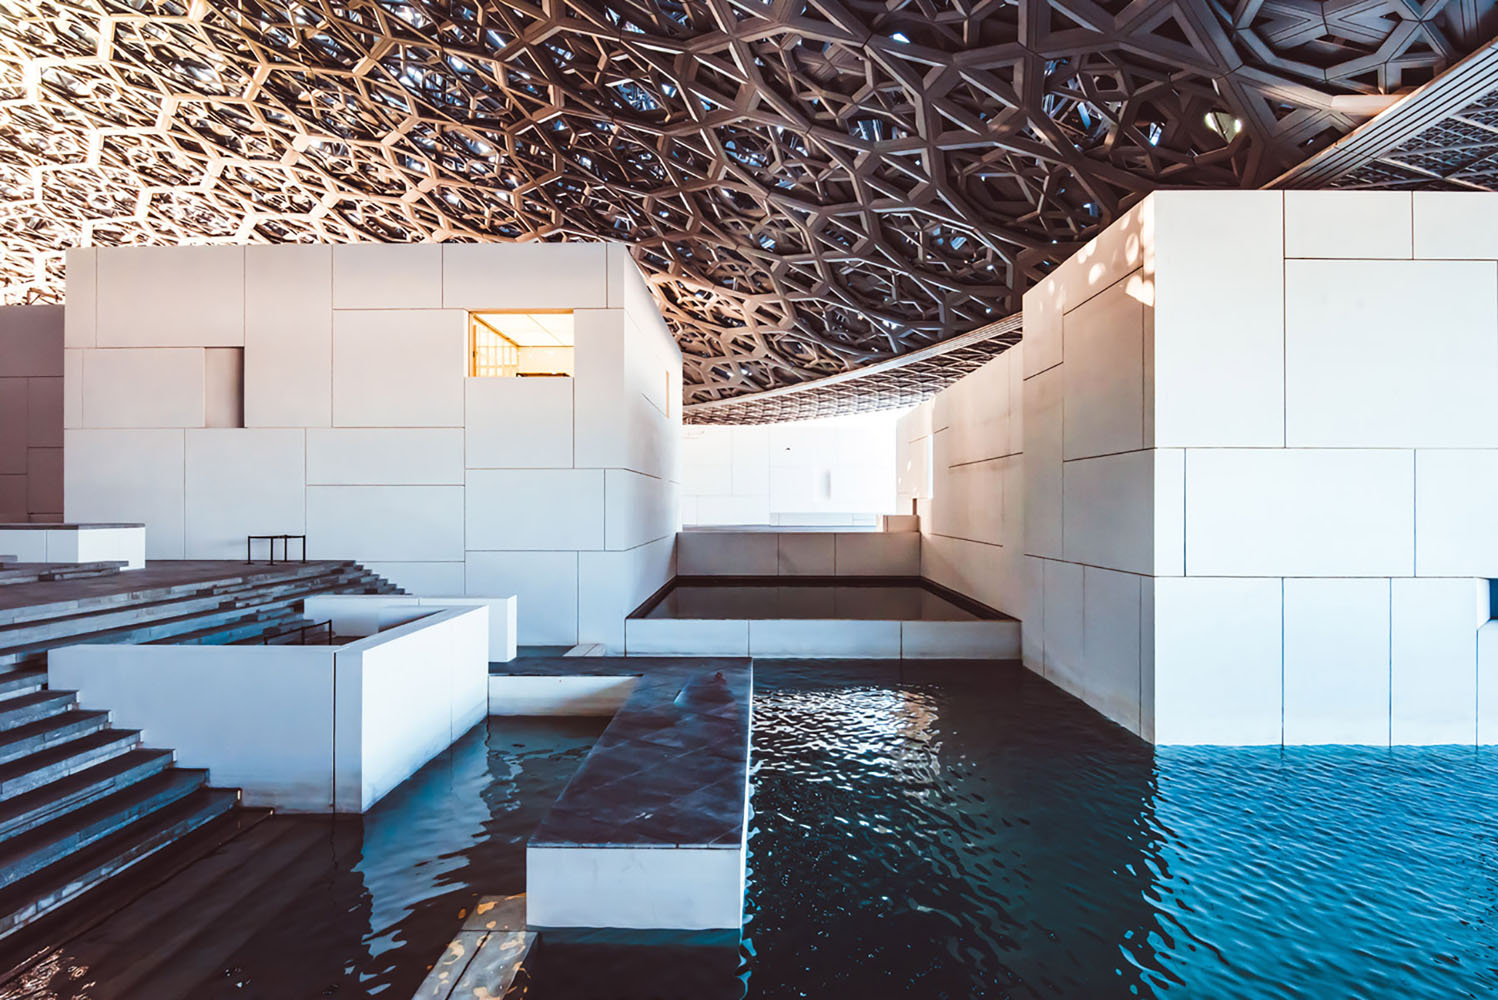 The pools in the interior of the Louvre Abu Dhabi